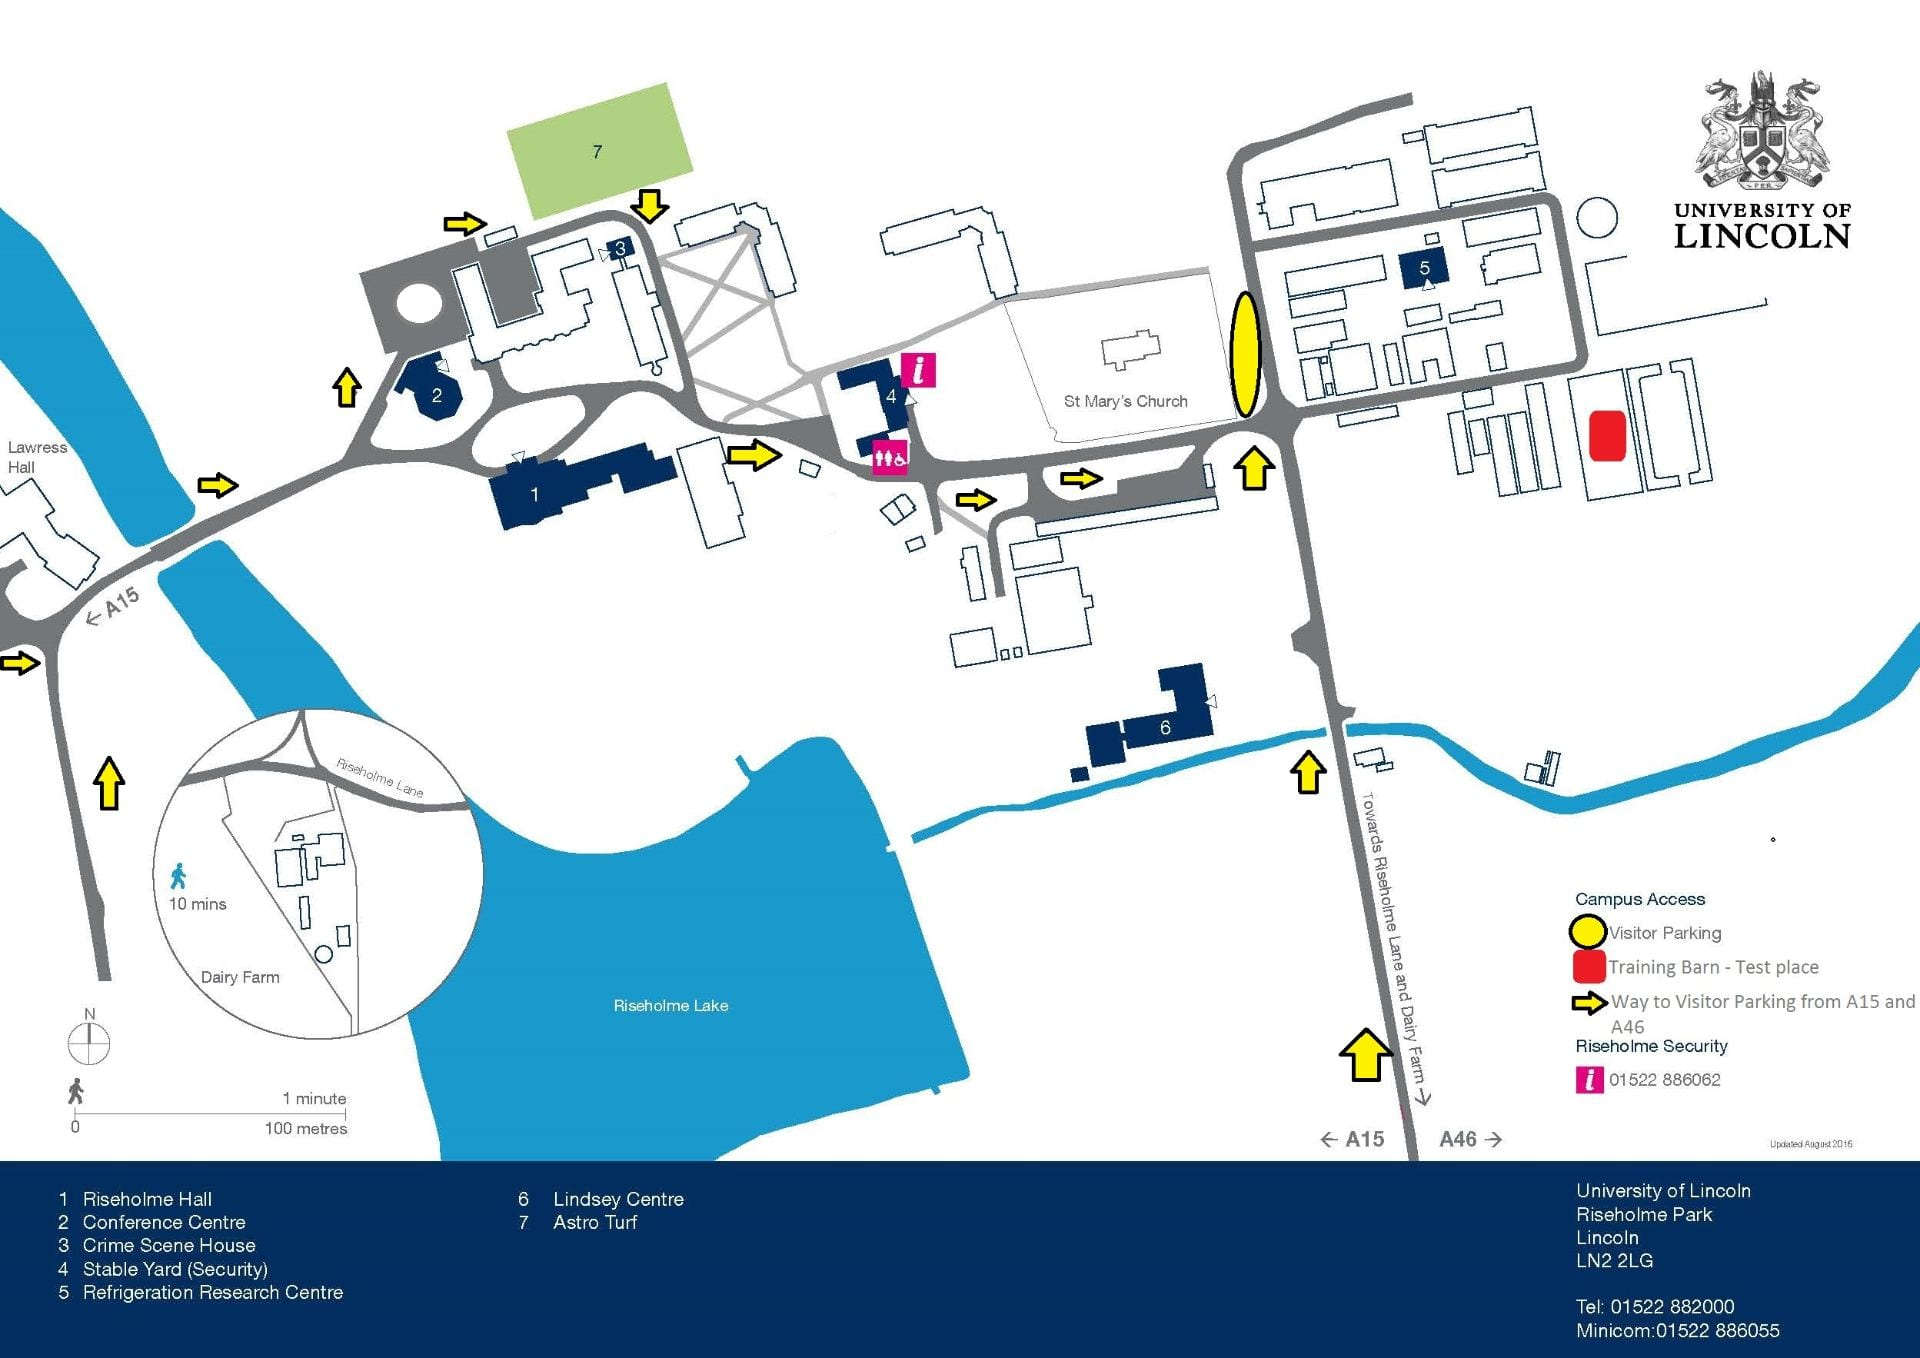 Riseholme campus - Parking space and test place